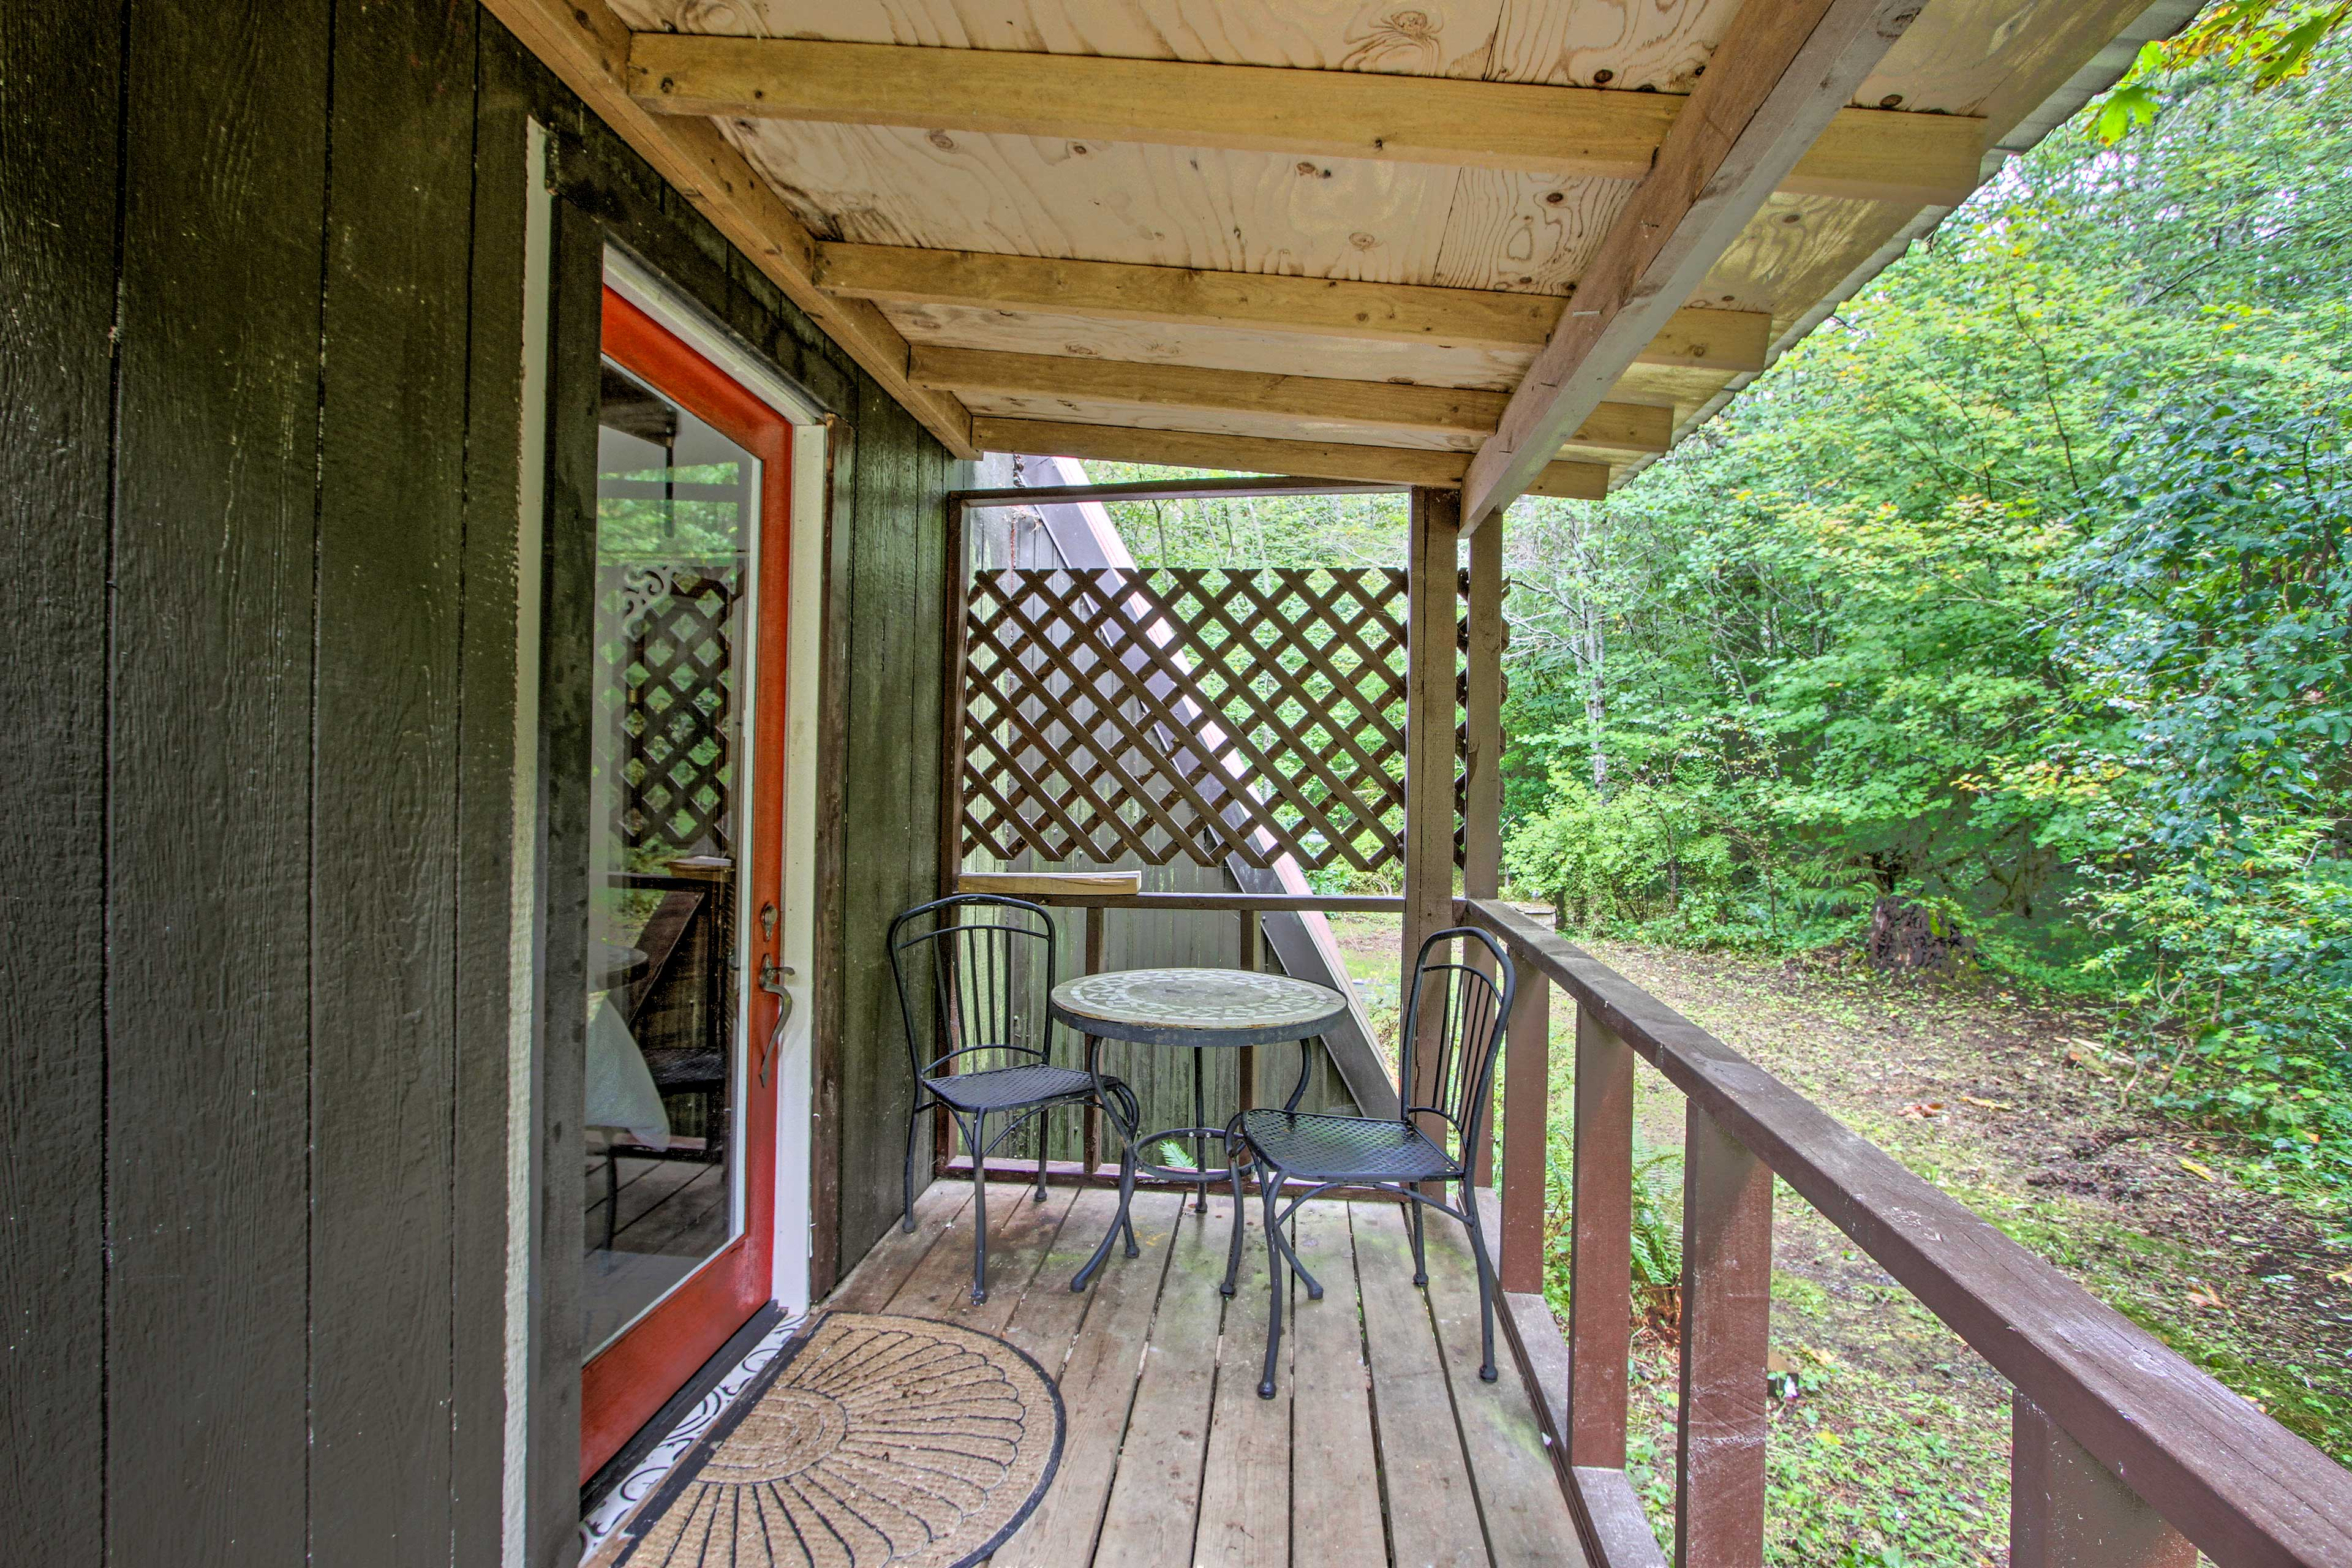 The covered deck houses a 2-person bistro table.